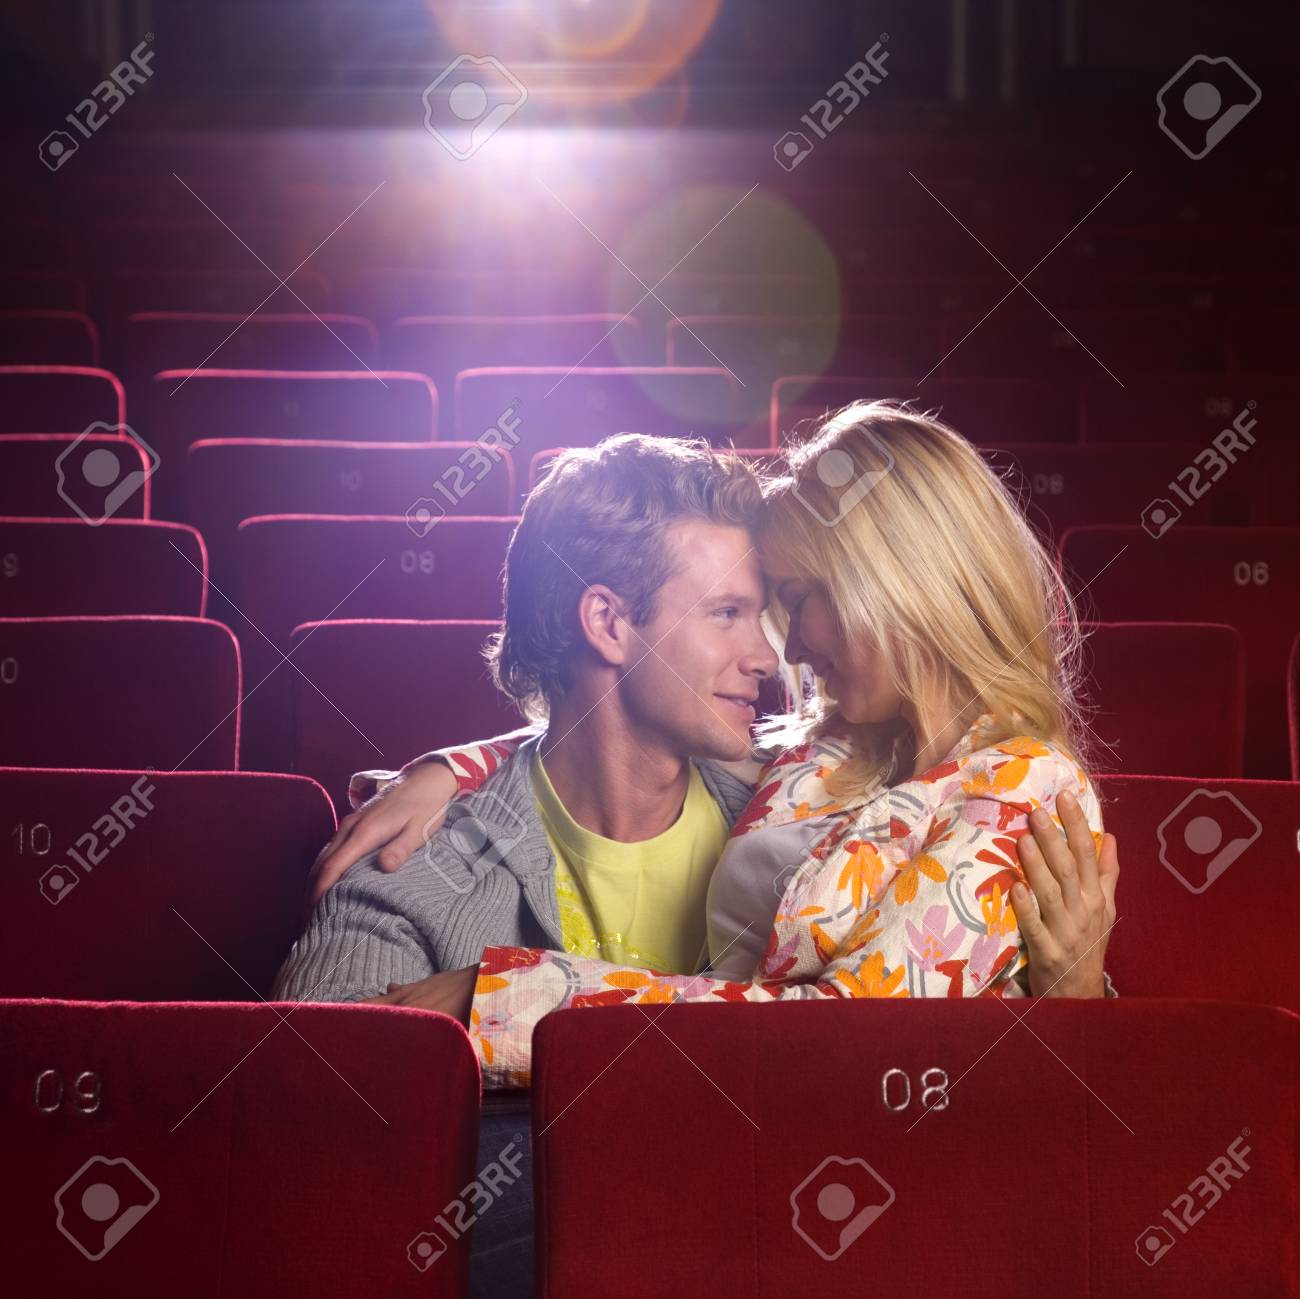 how to kiss a girl in a movie theater